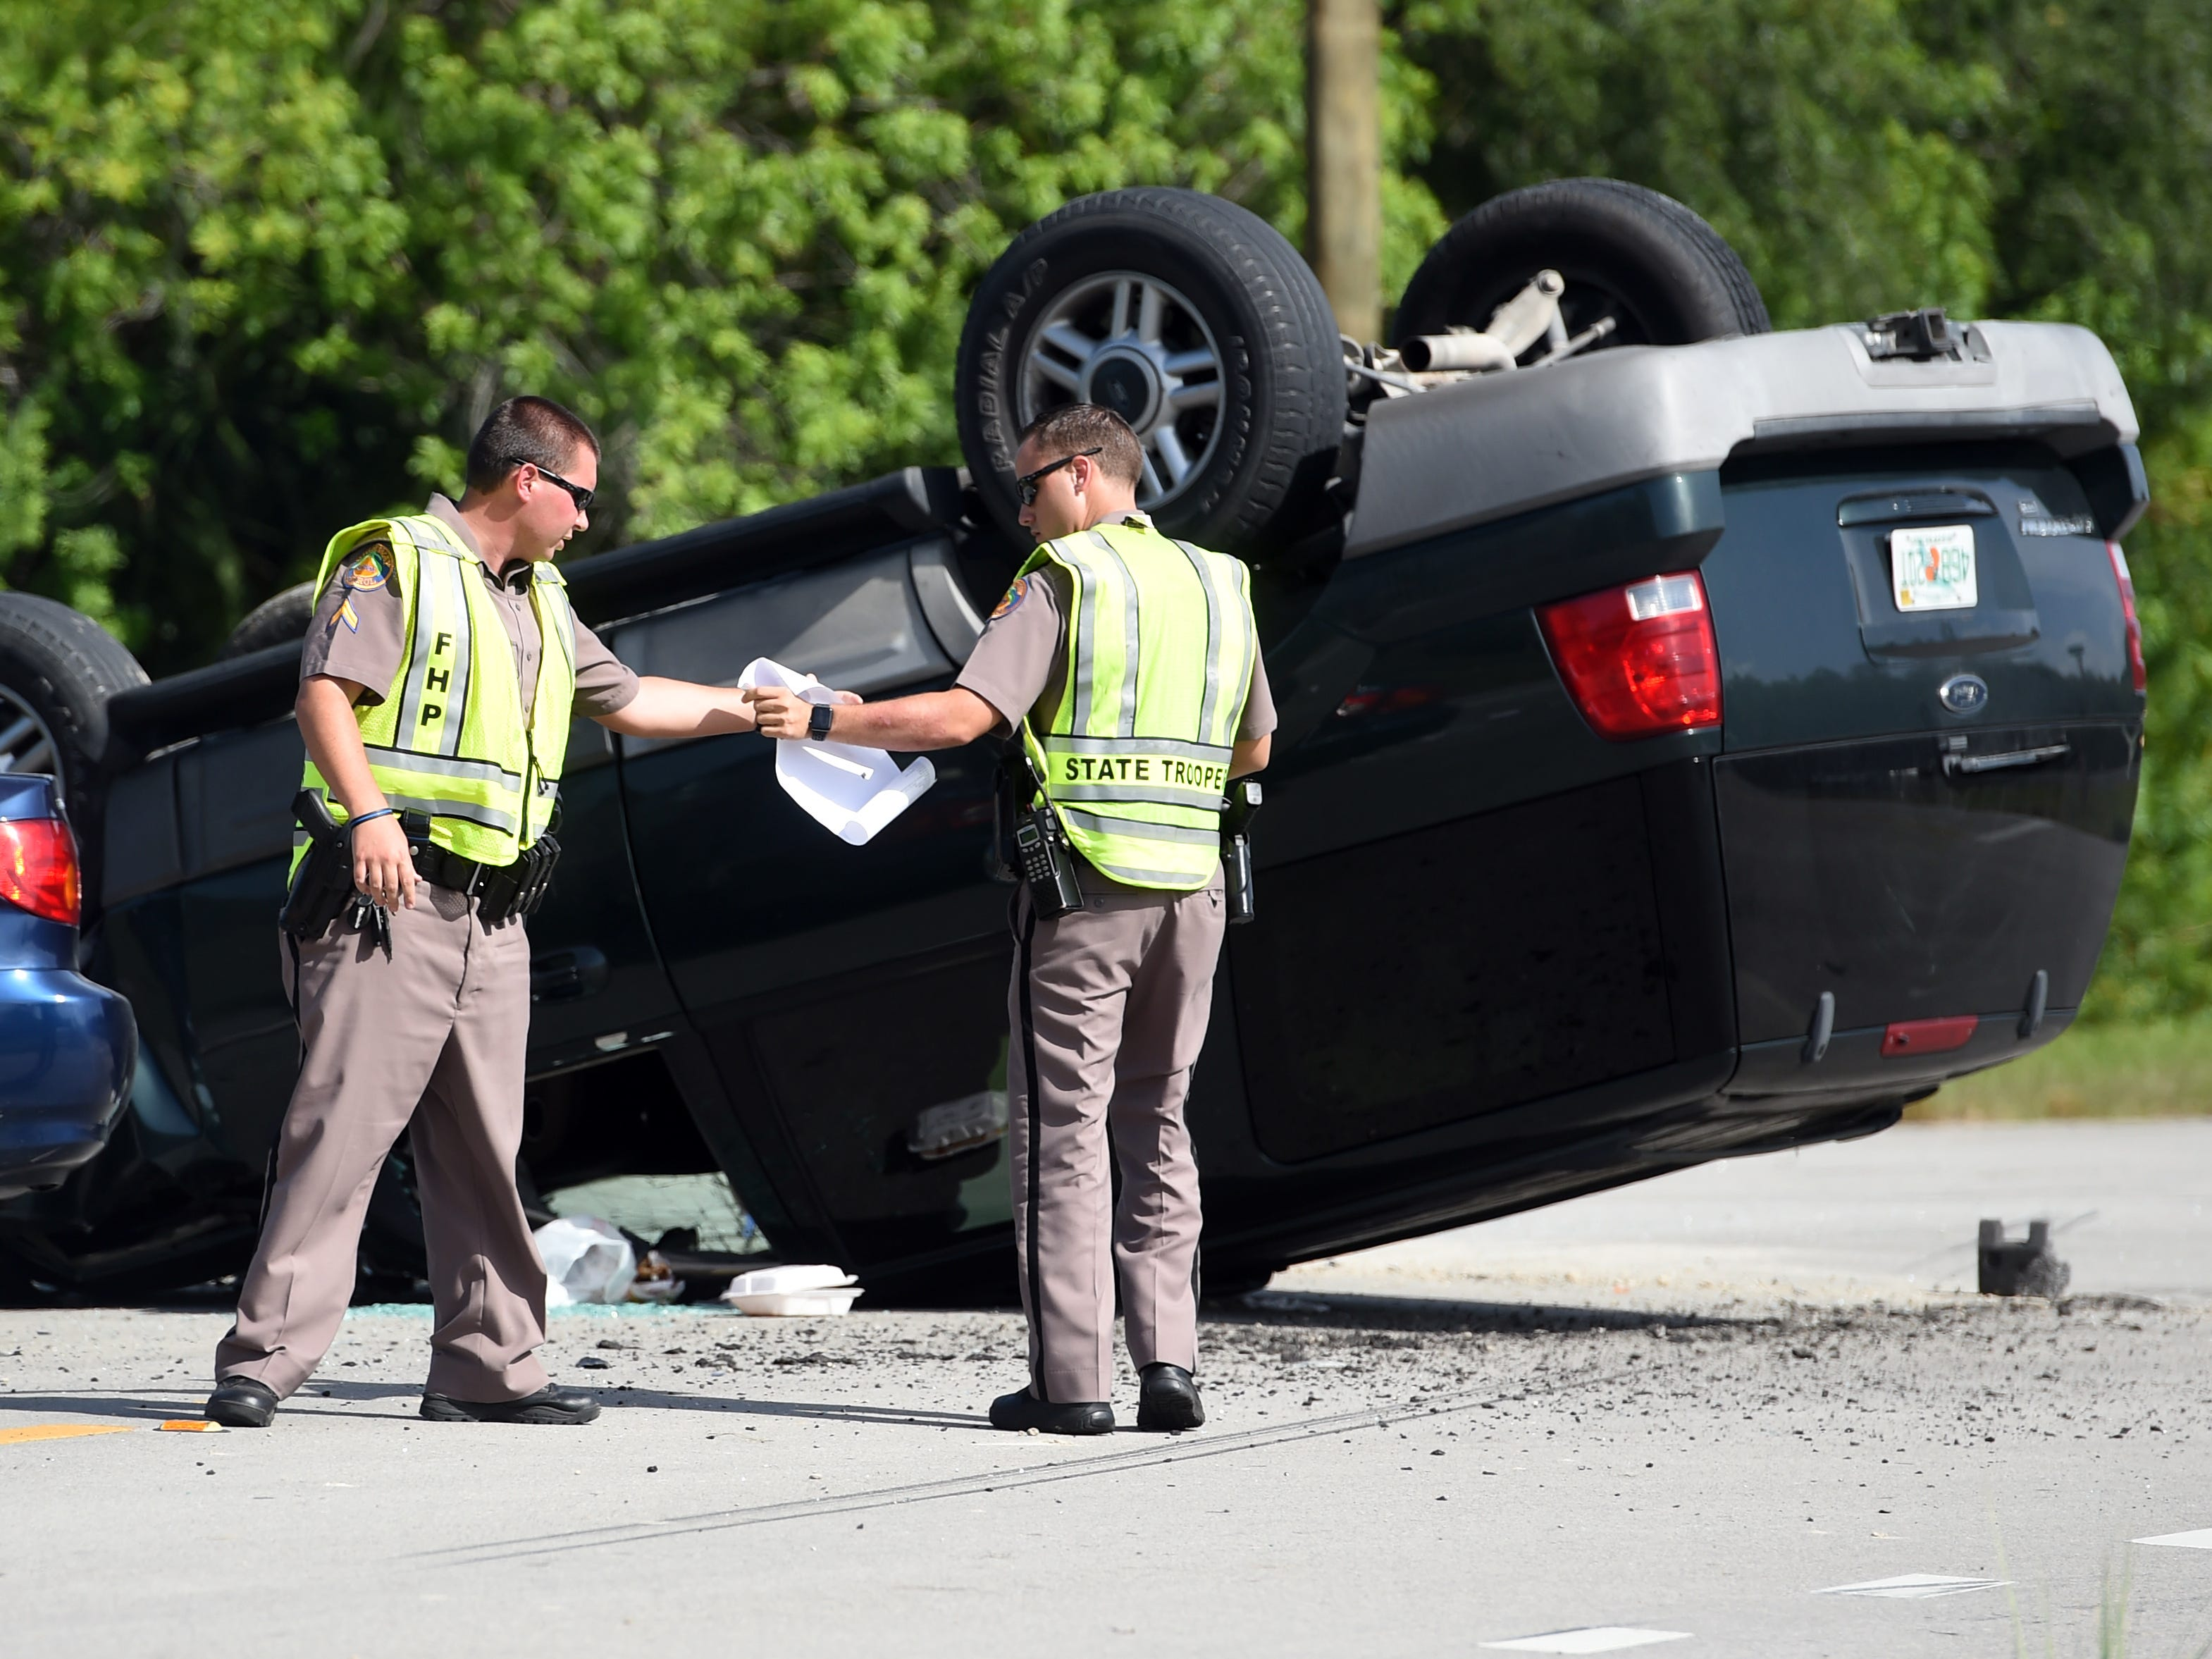 Three people were transported to area hospitals after a two-car crash Thursday, Aug. 9, 2018 at the intersection of 77th Street and Old Dixie Highway.